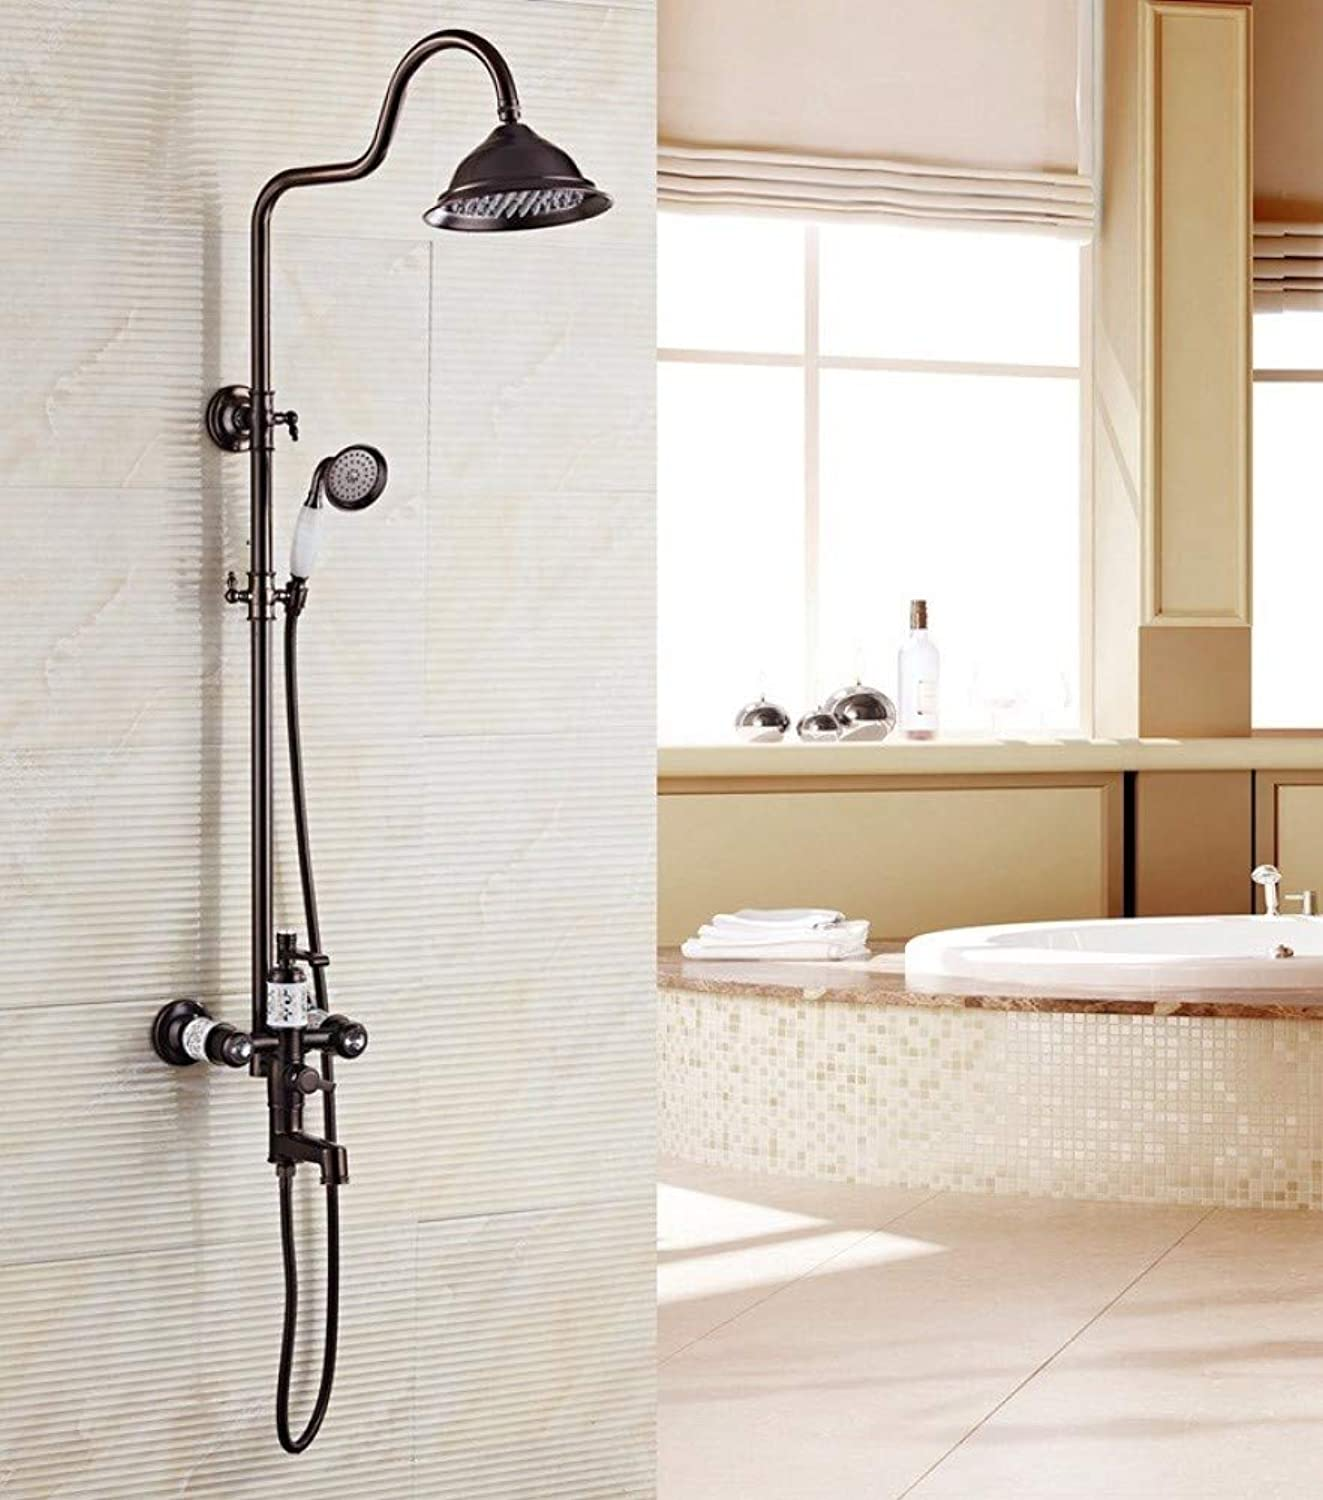 GZF Luxury NEW Antique Brass Rainfall Shower Faucet Set + Single Lever Mixer + Hand Shower Wall Mounted,black